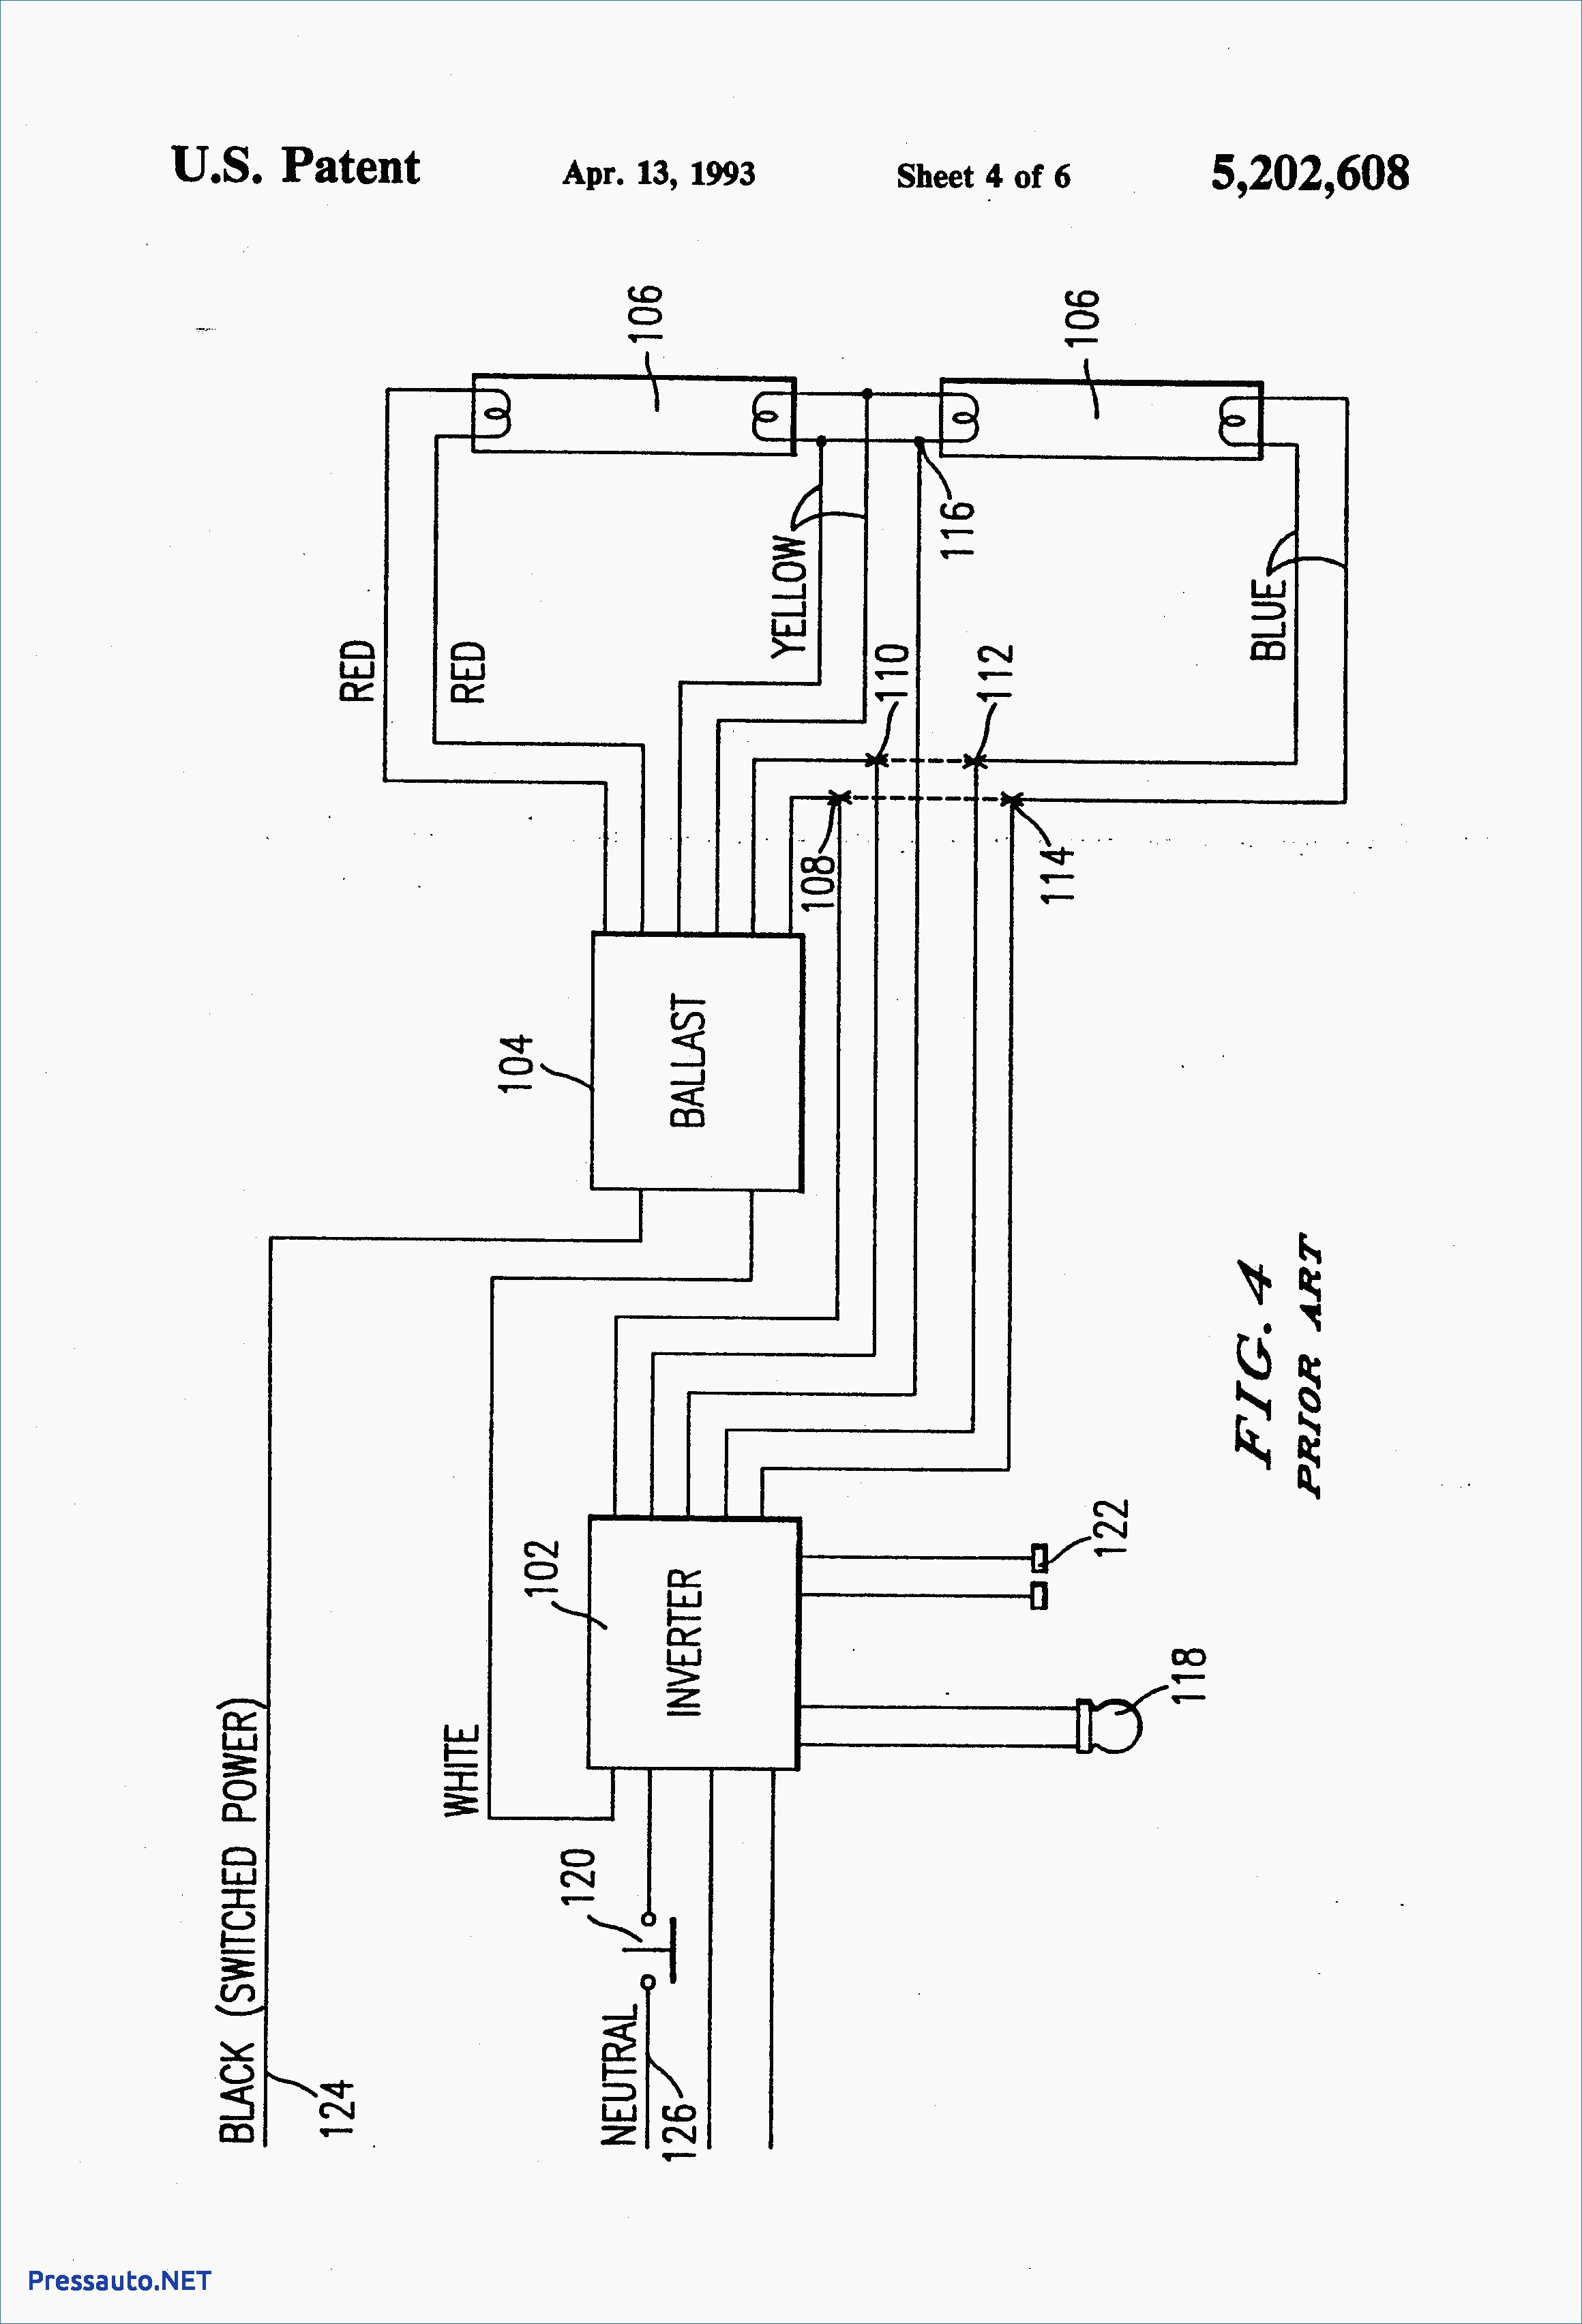 Tork Wiring Schematic for Lighting Contactor and Photocell Sn 2694] Cell Wiring Diagram Intermatic Time Clock Of Tork Wiring Schematic for Lighting Contactor and Photocell F62dca3 tork Lighting Contactor Wiring Diagram